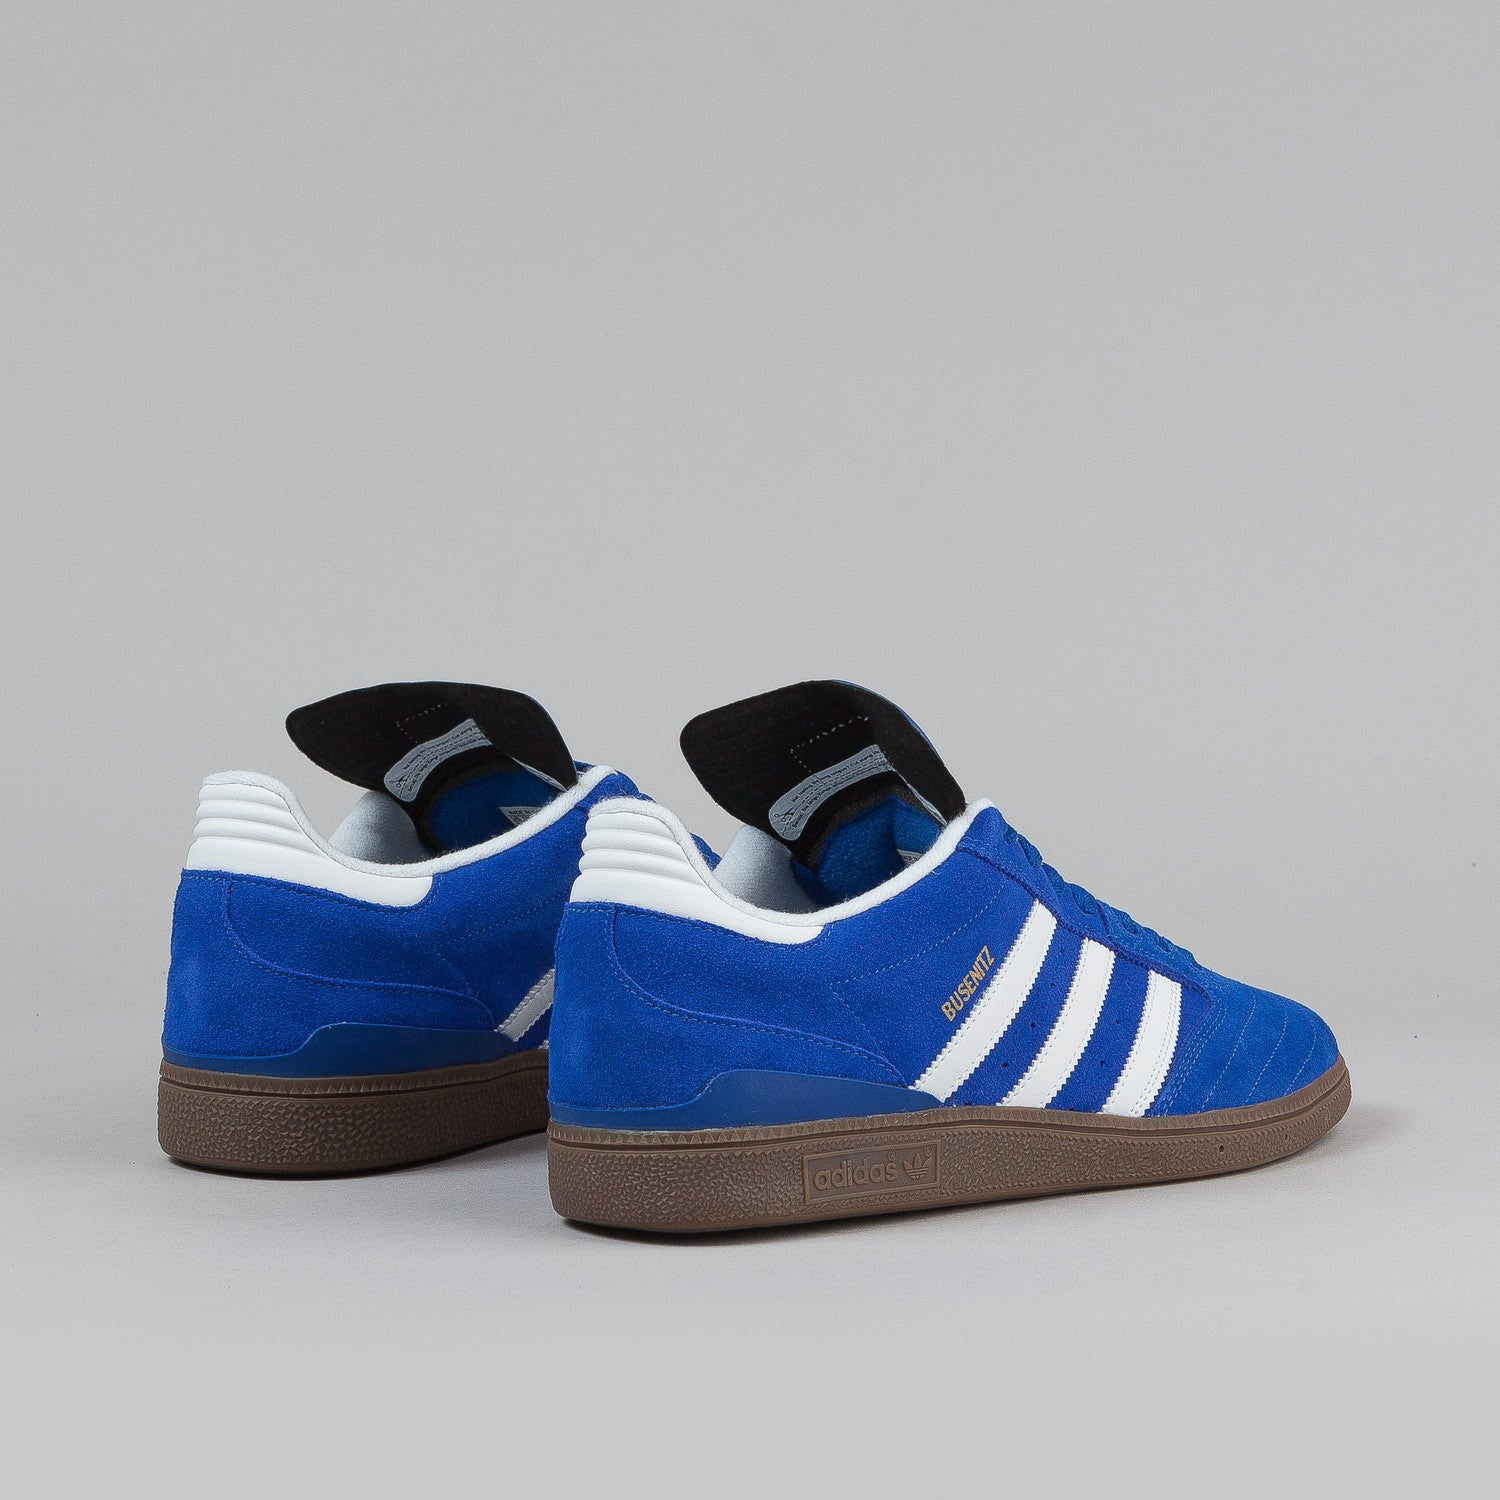 Adidas Busenitz Shoes - True Blue / White / Metallic Gold